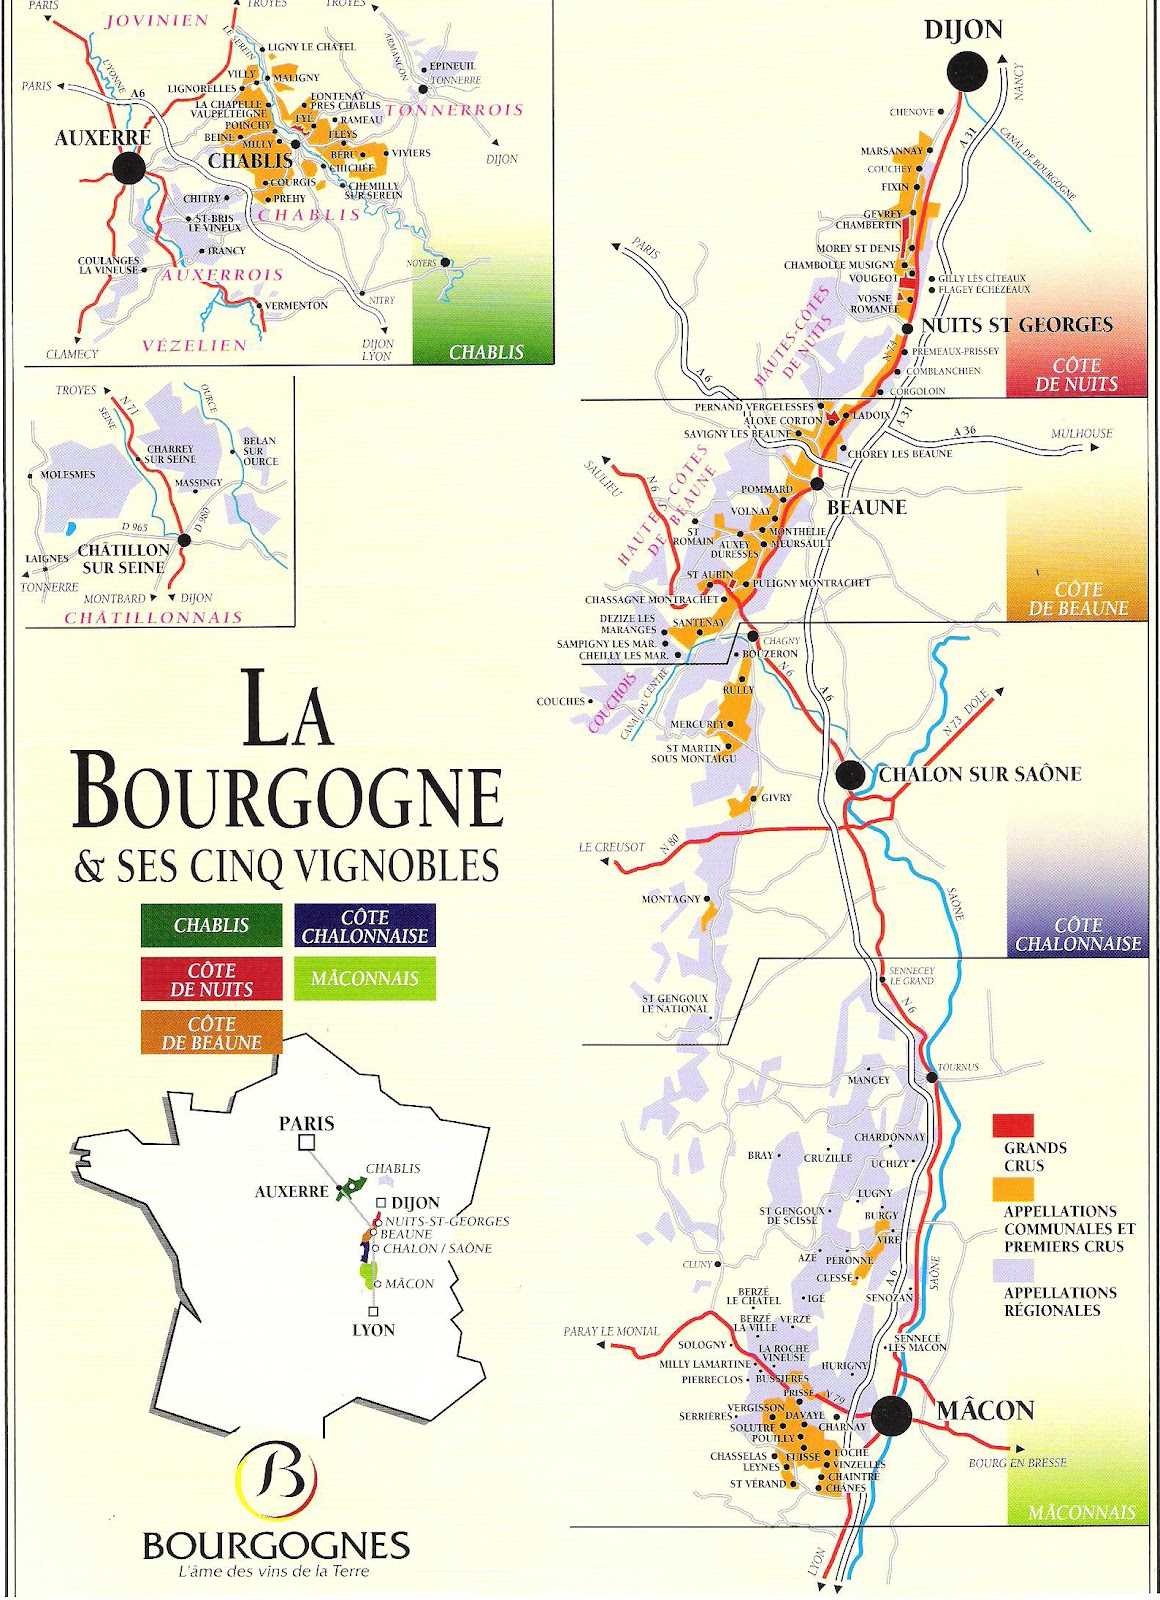 Wine -- Mise en abyme: The Burgundy wine region (sans ...